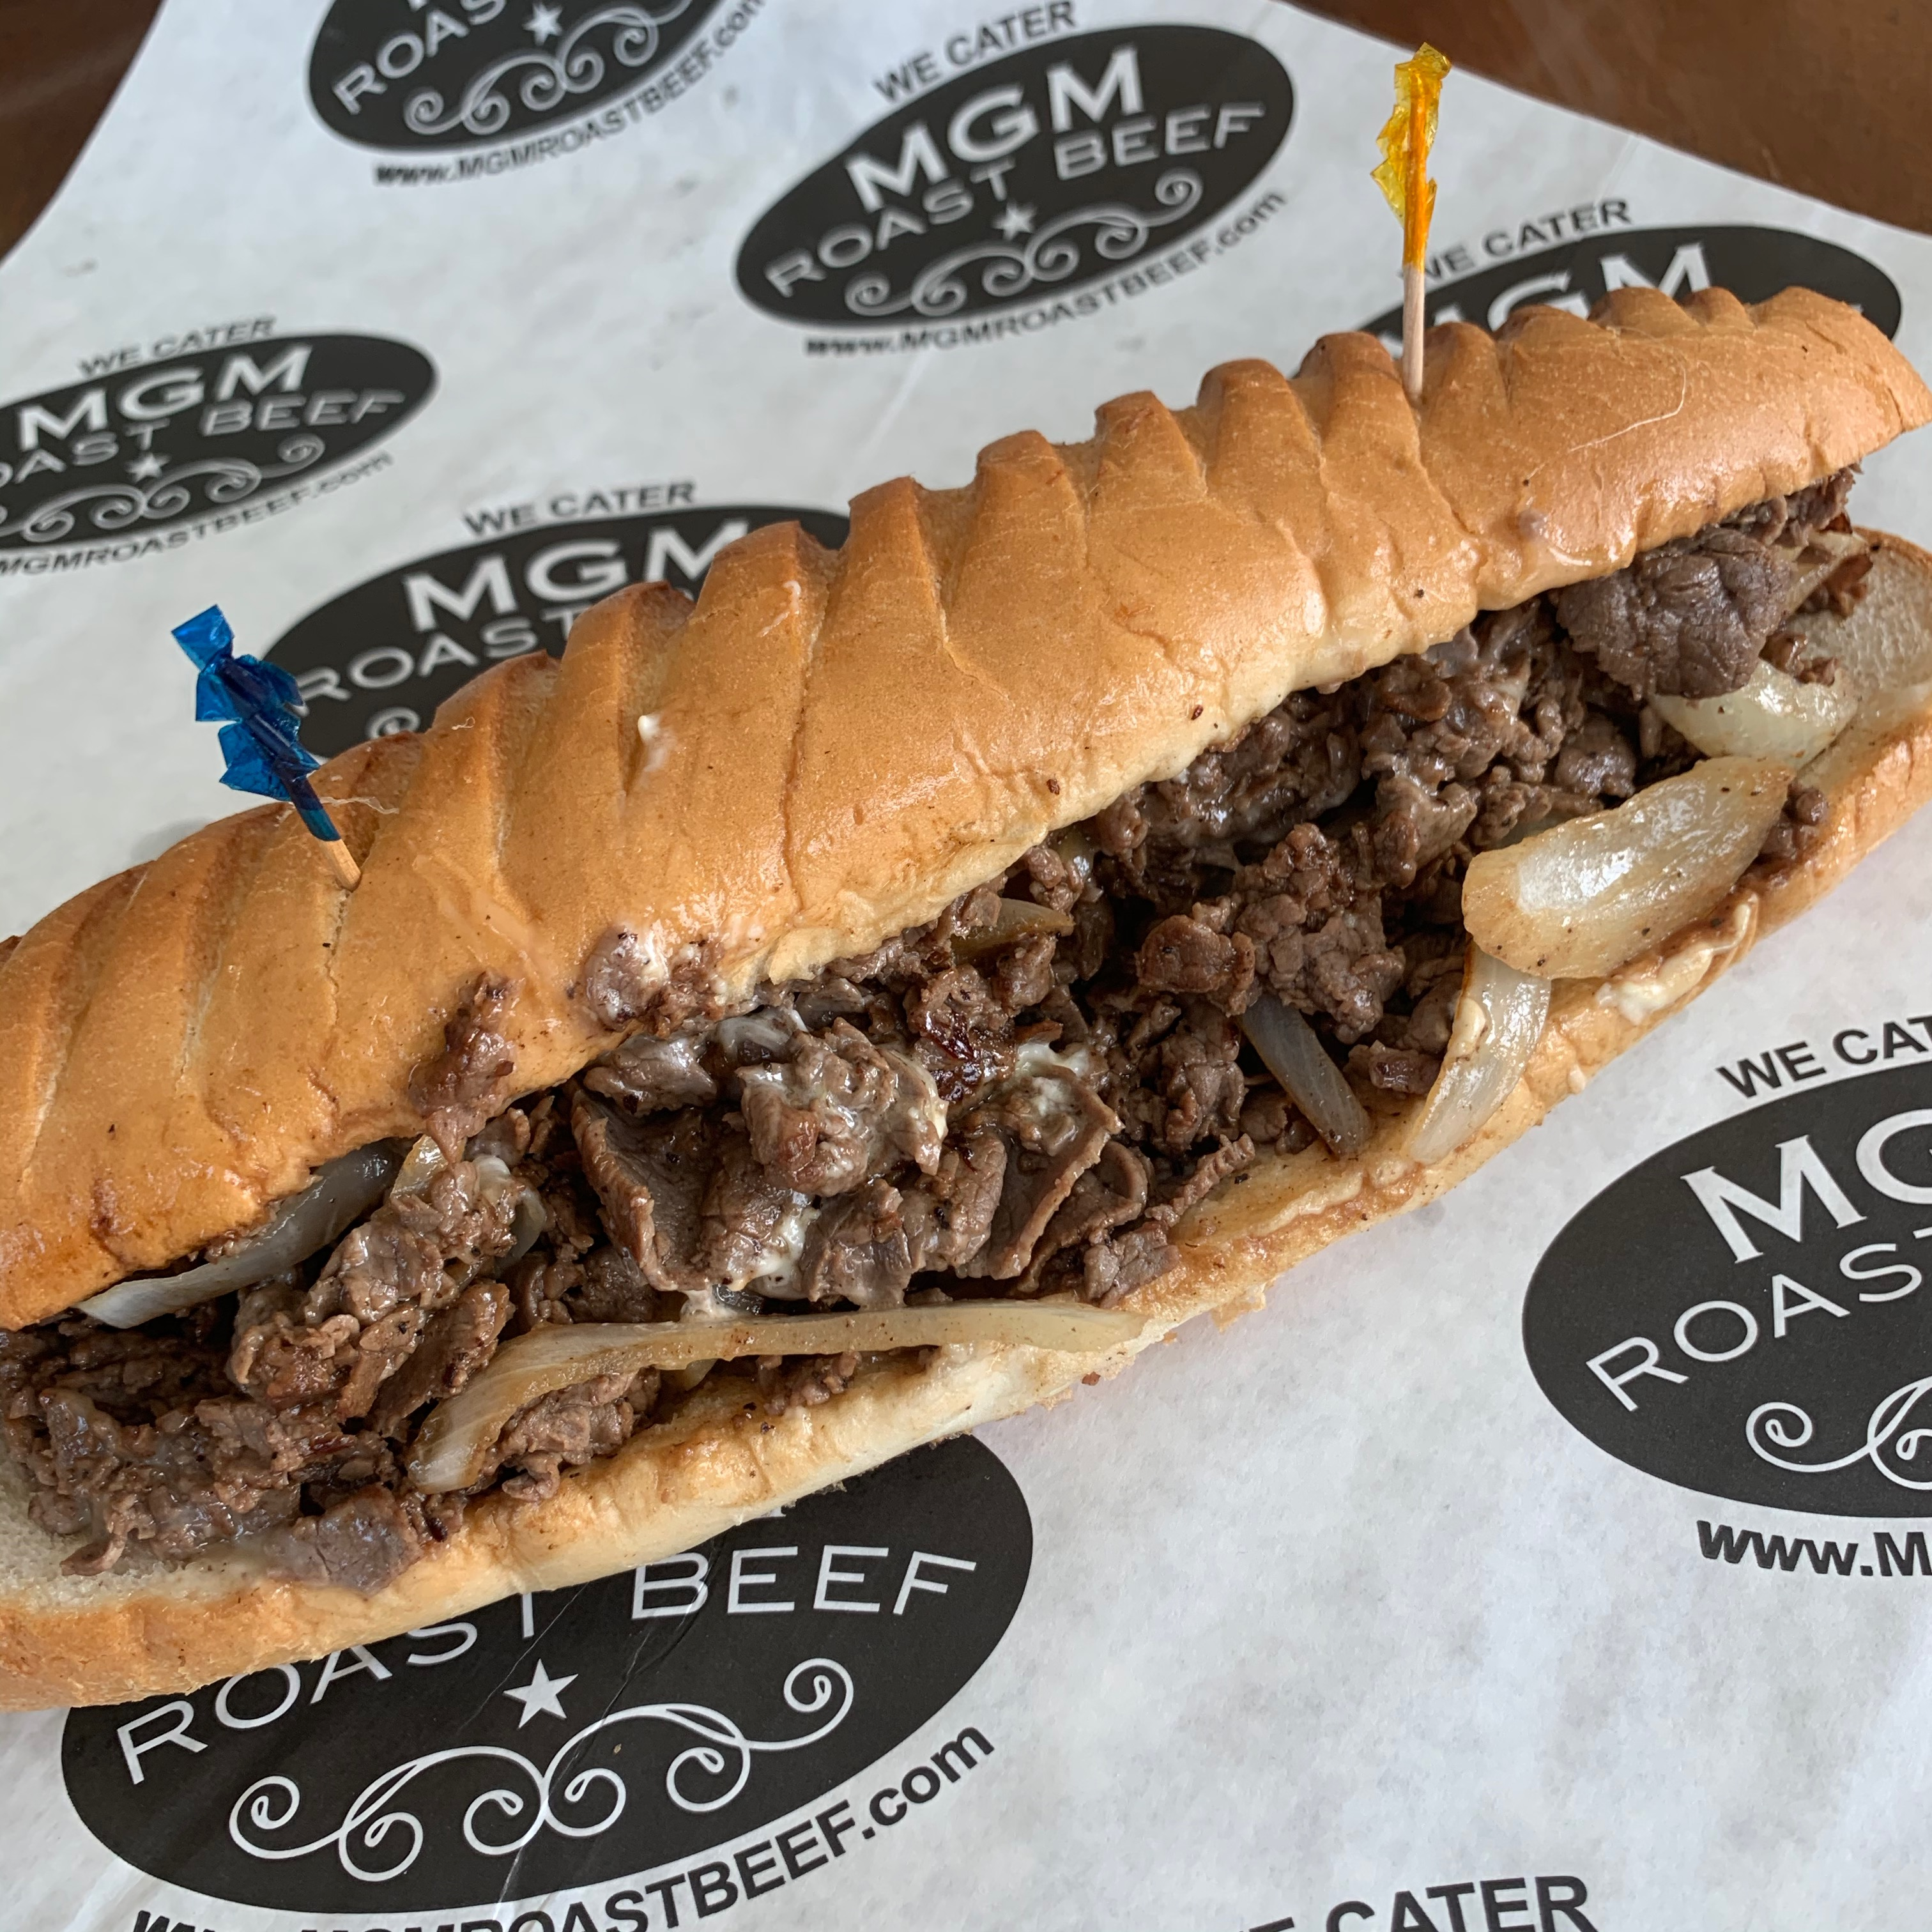 A new steak and cheese sandwich from MGM Roast Beef